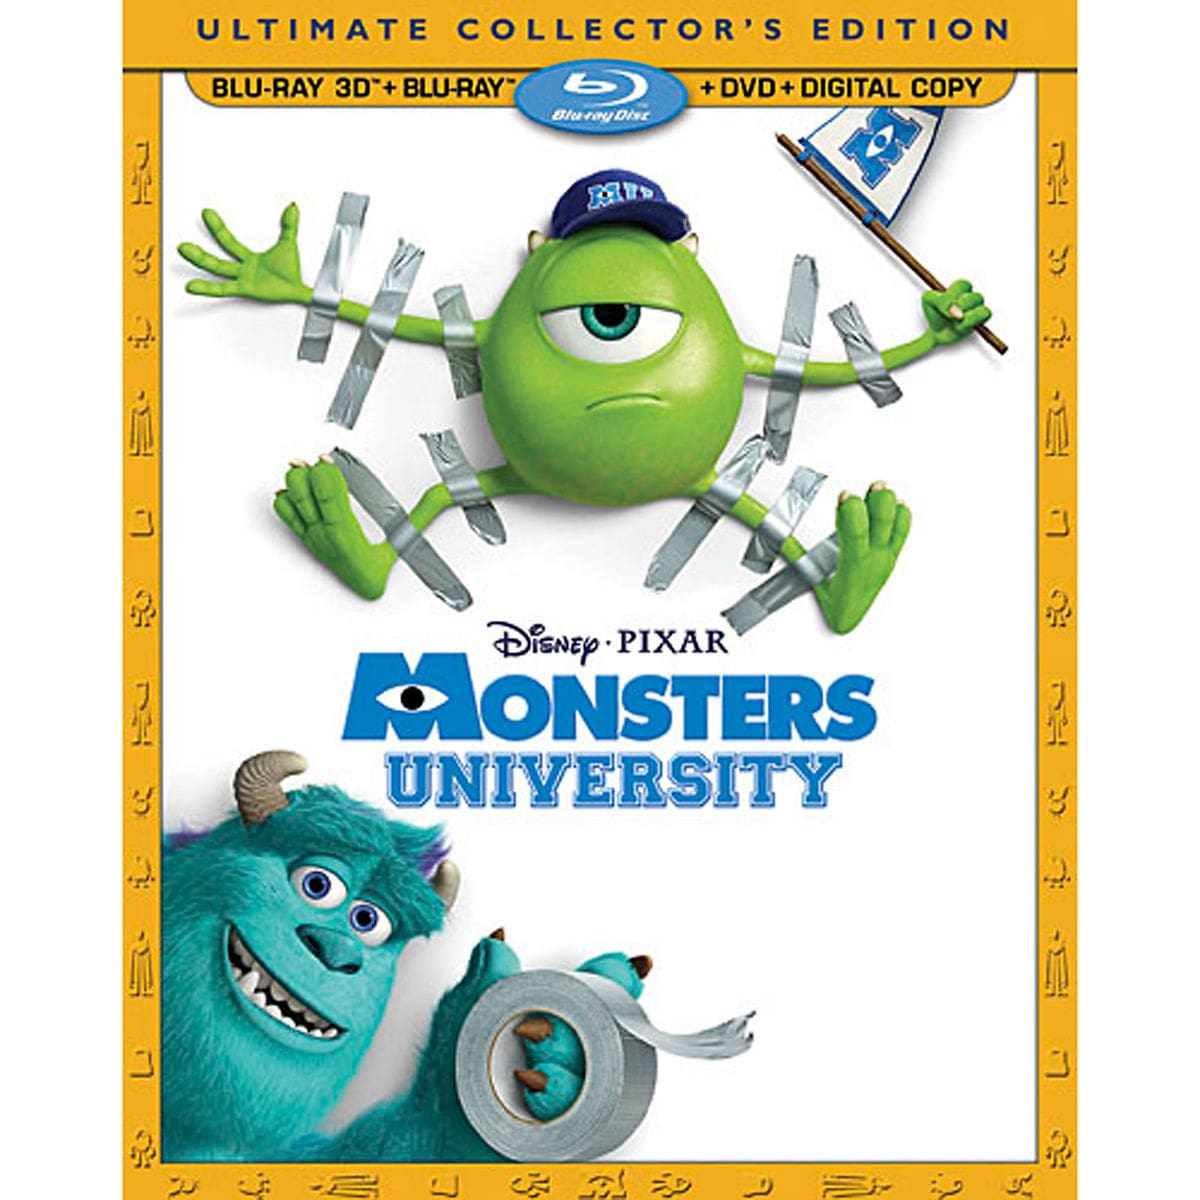 monsters university 4 disc ultimate collector s edition shopdisney